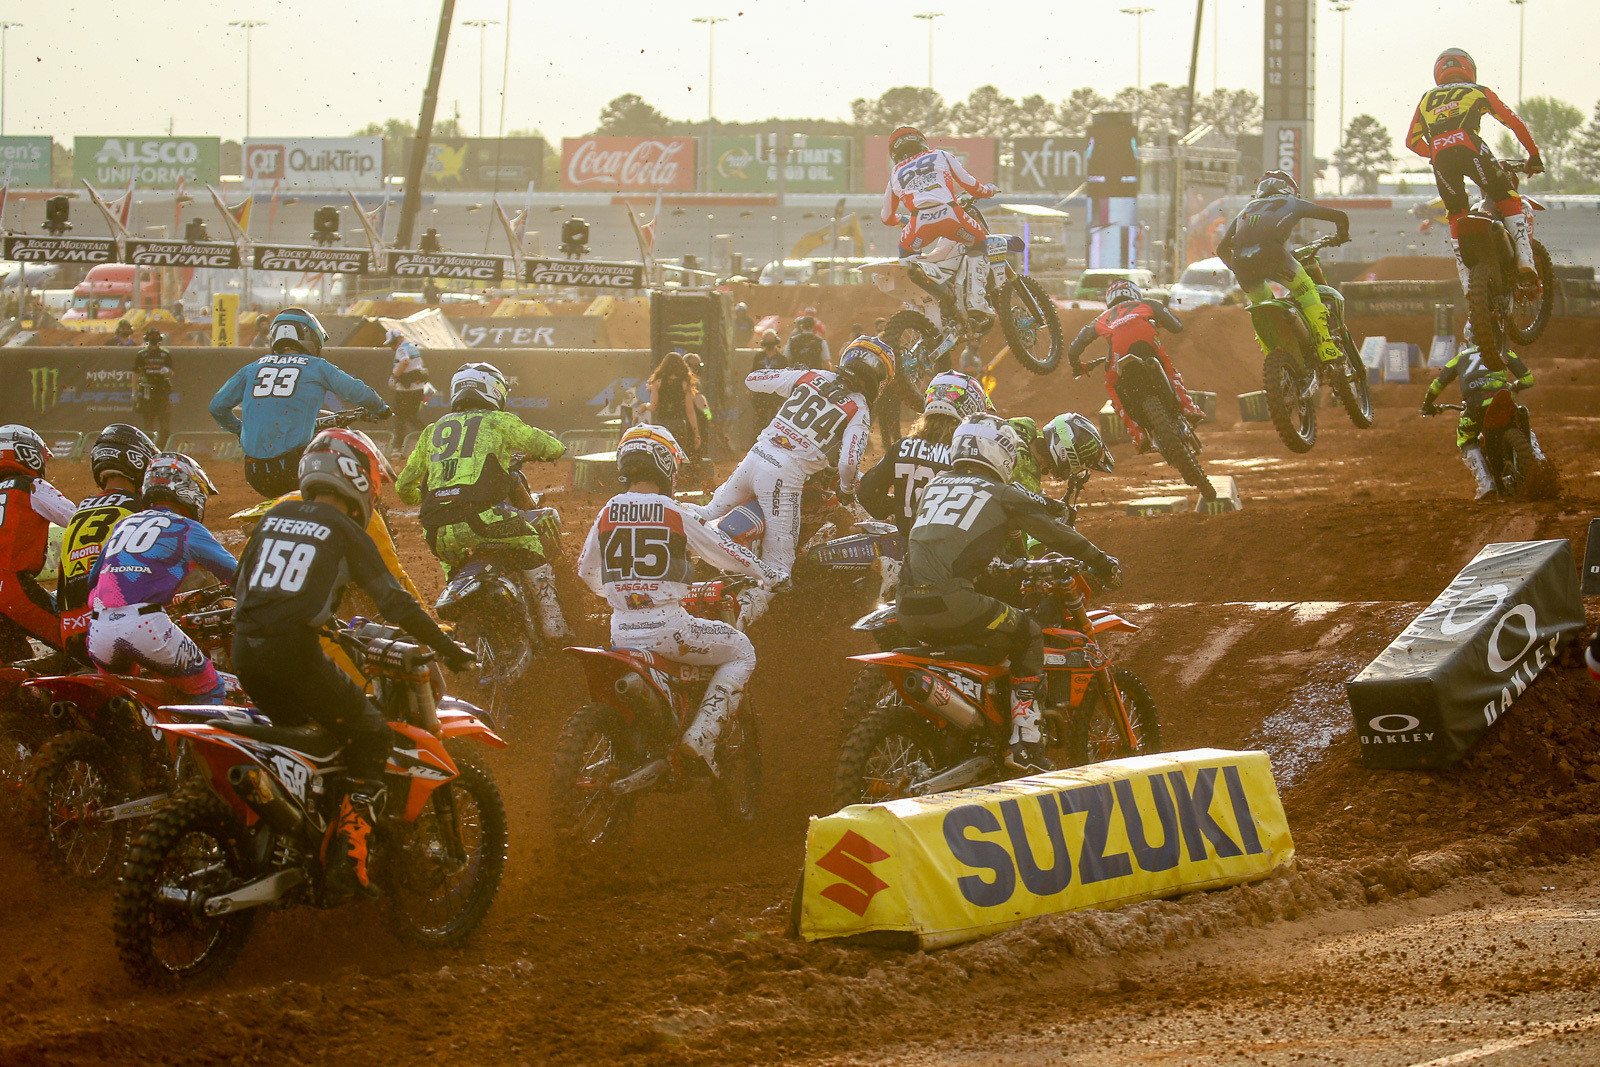 It was one of those days for Ryan Sipes (264). This was just after the start of the heat race.